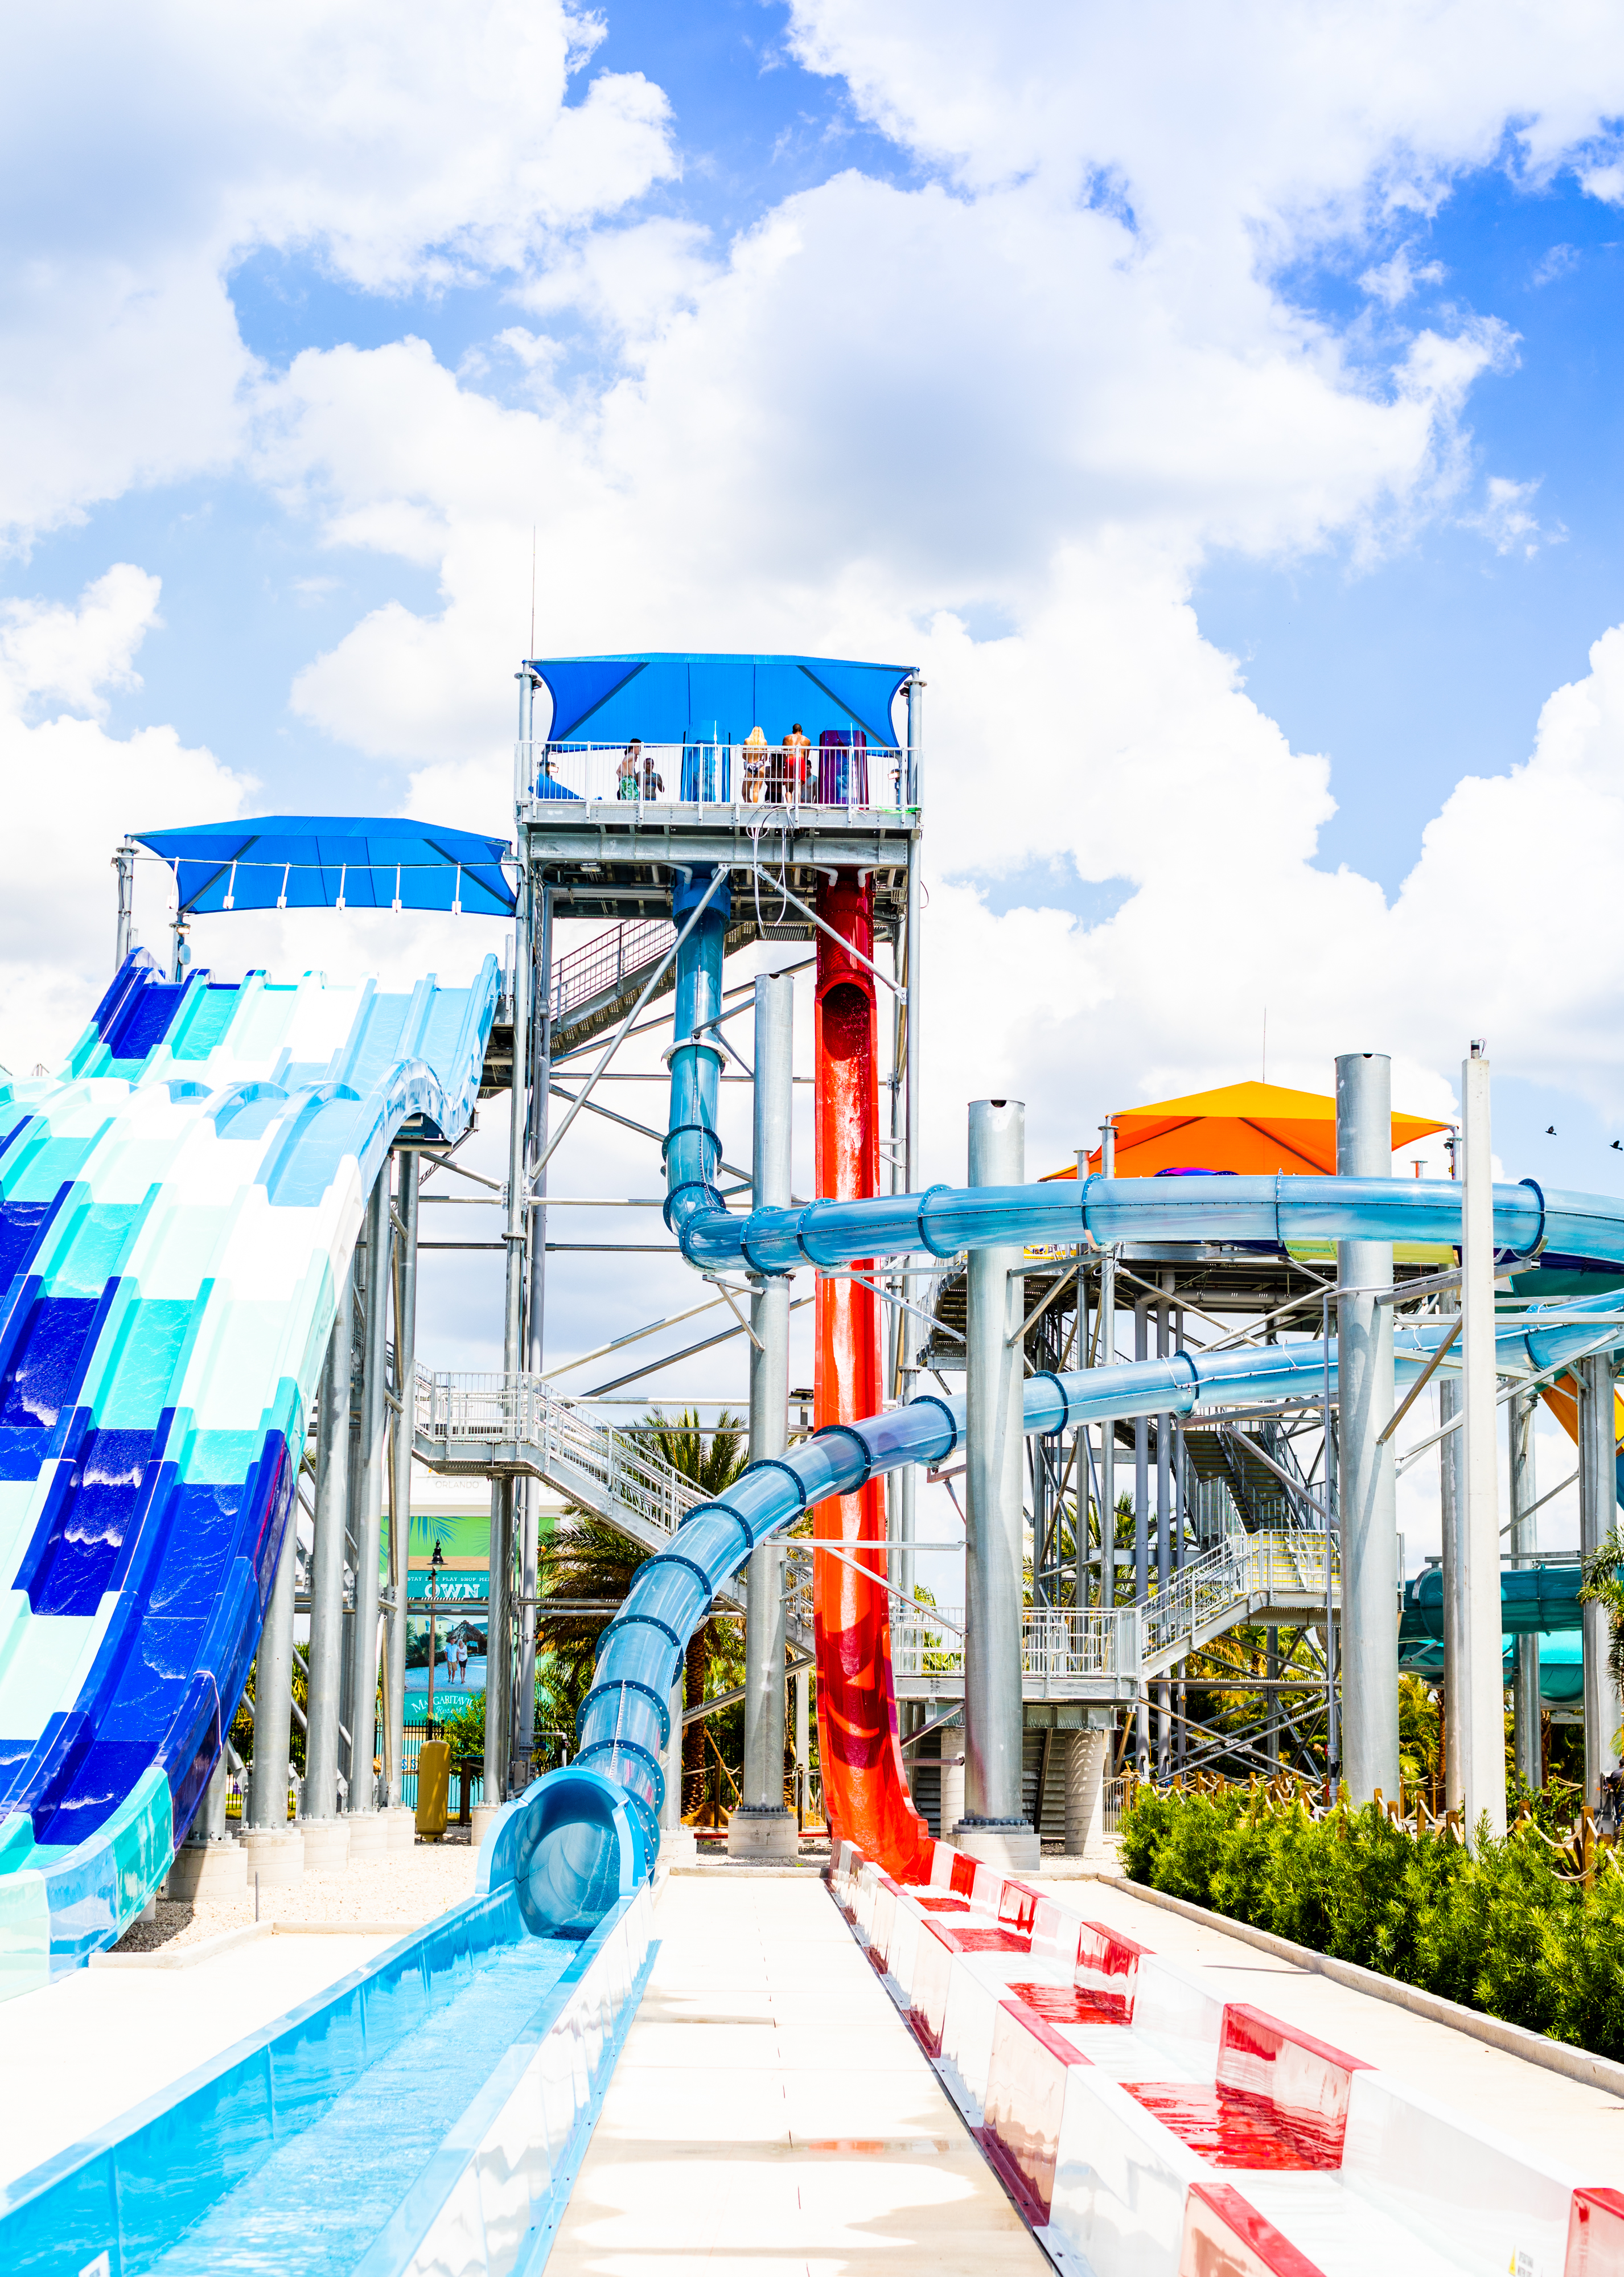 Island H2O Live! water park opening for preview days starting June 5